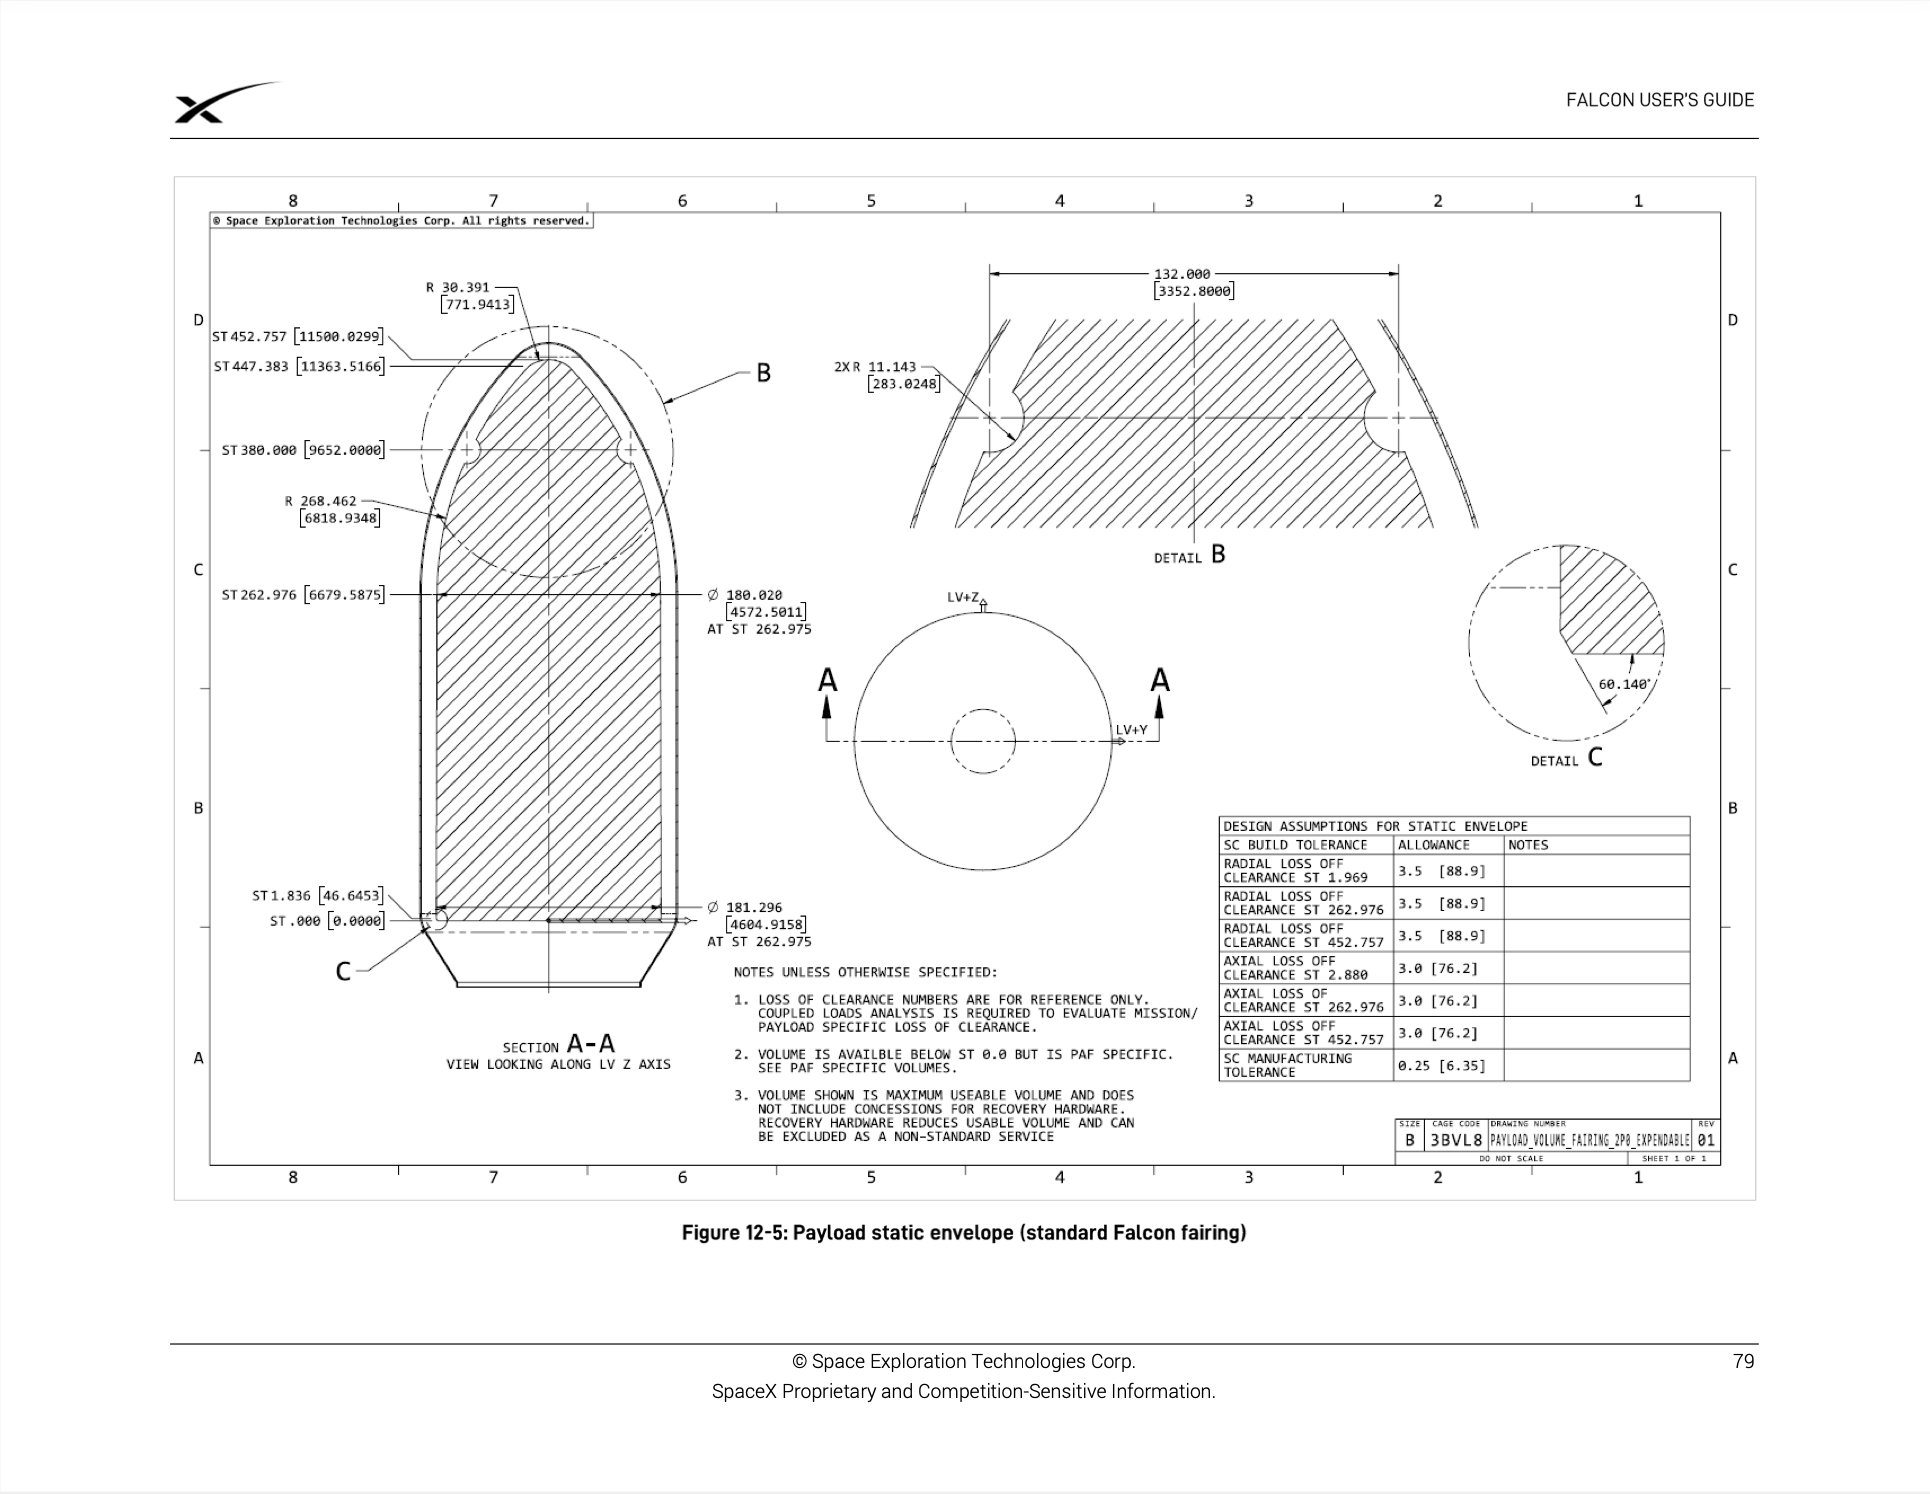 SpaceX standard payload fairing diagram.